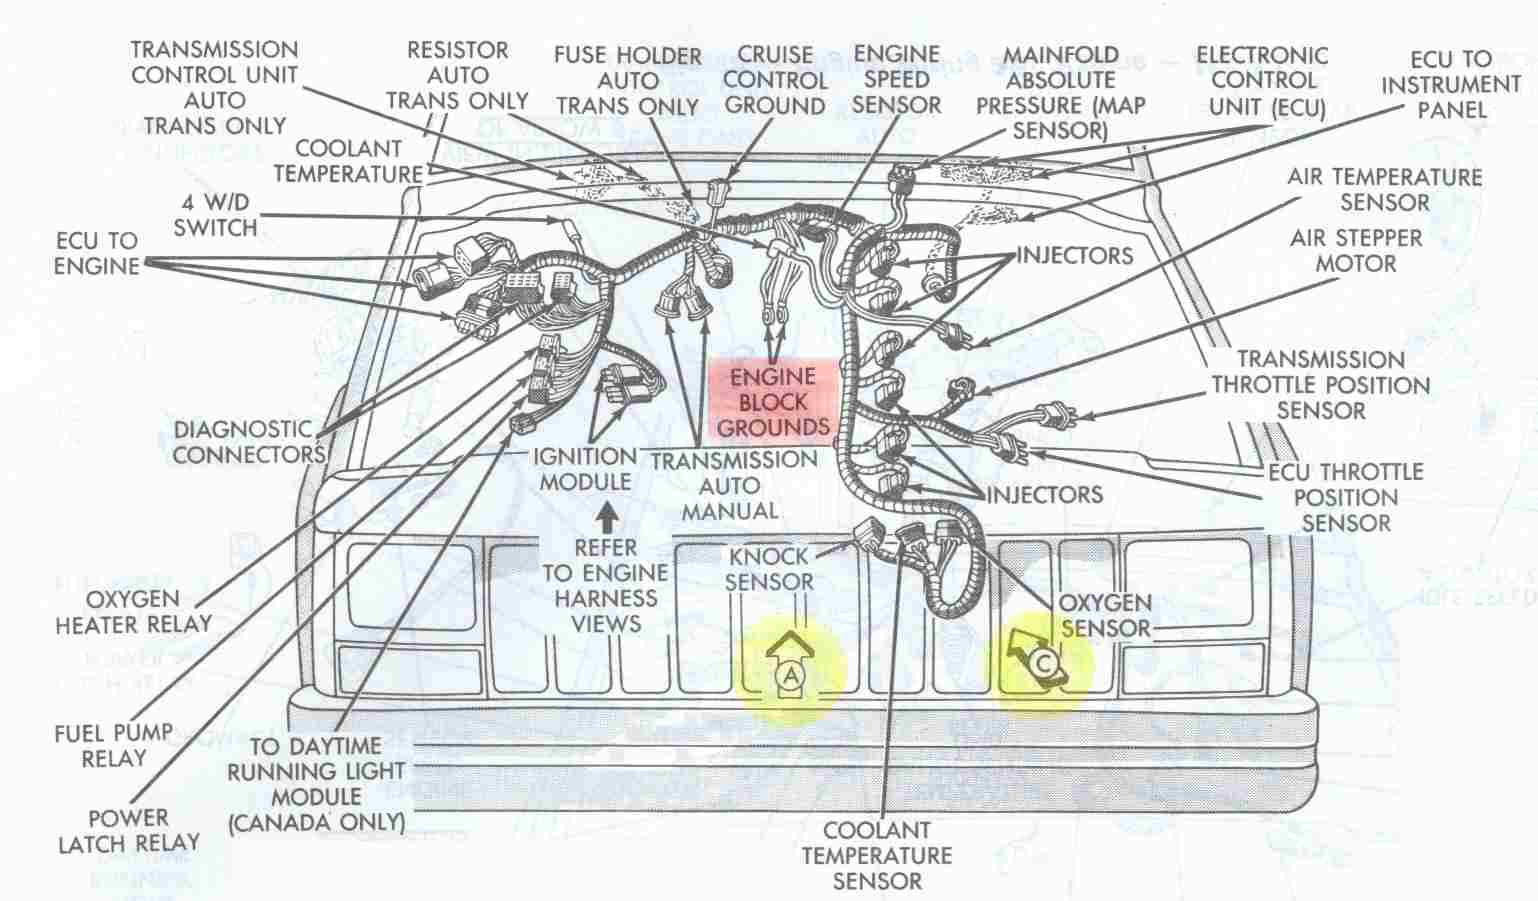 hight resolution of 1989 jeep yj engine diagram wiring diagram today jeep 4 2 engine vacuum diagram source 1990 jeep wrangler 4x4